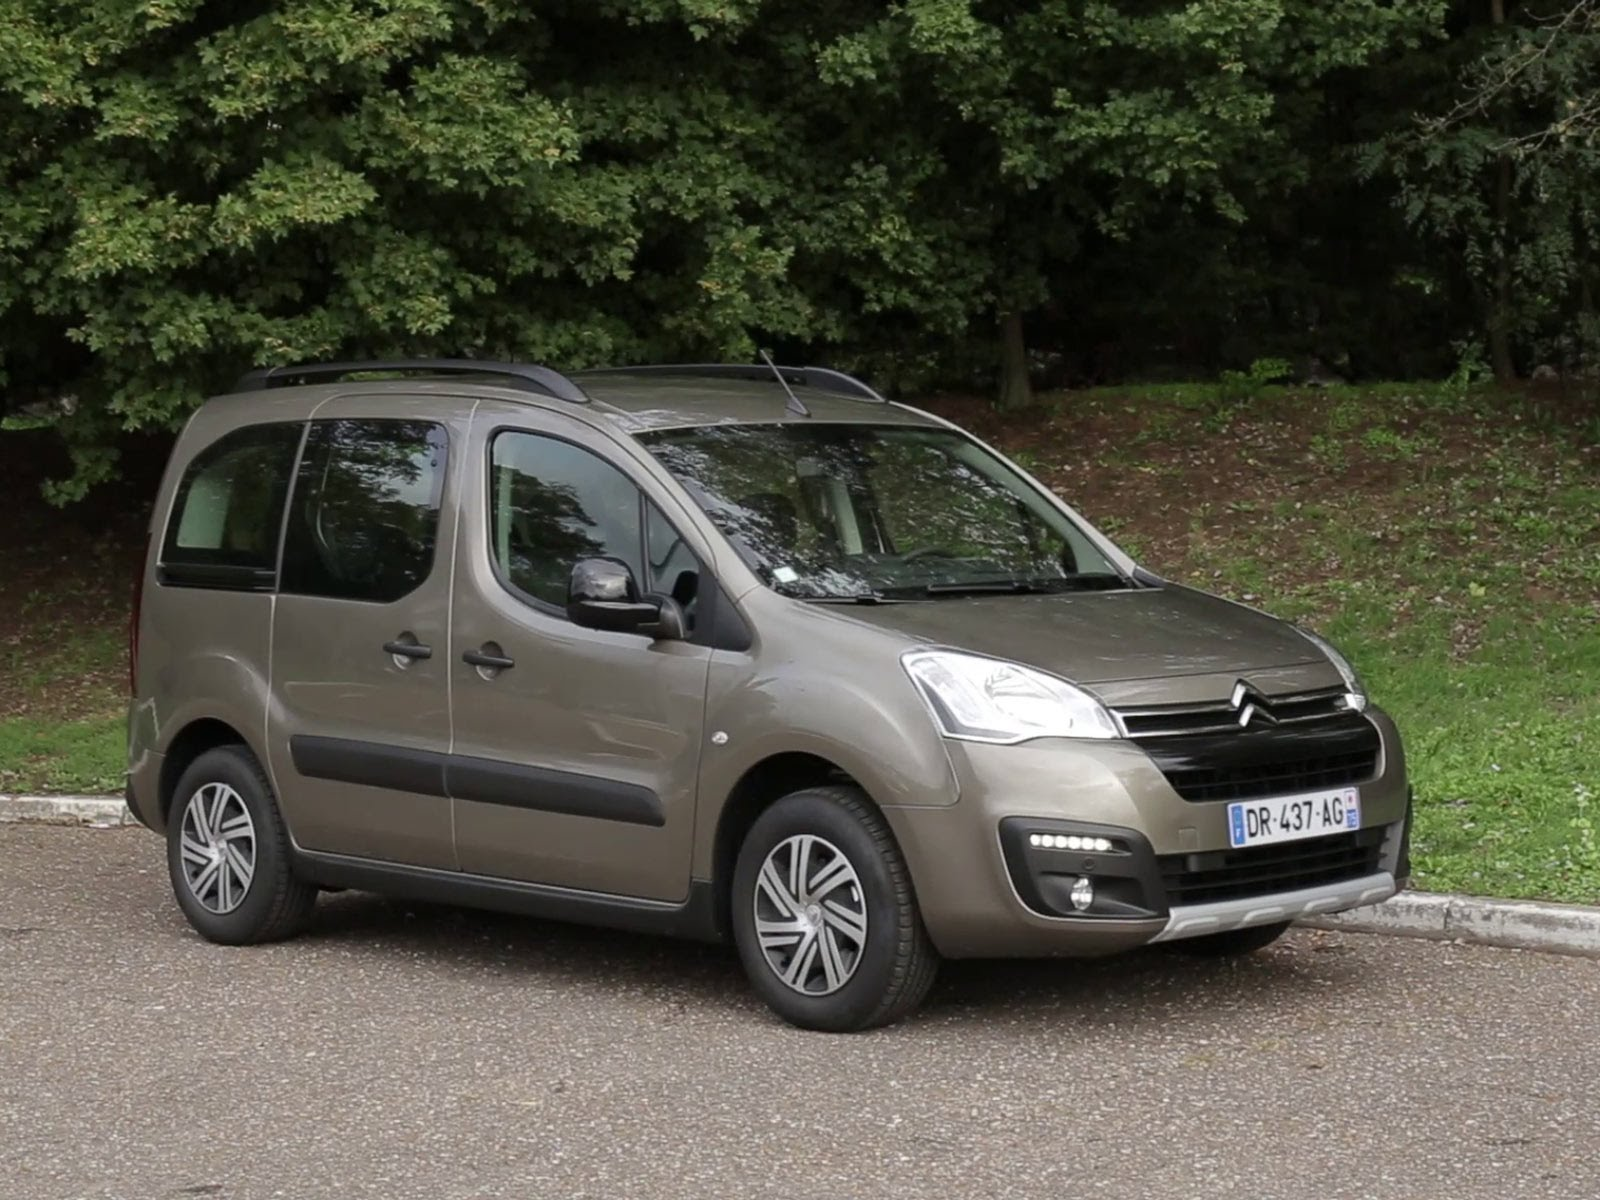 Citroen Berlingo II Restyling 2 2015 - now Compact MPV #3